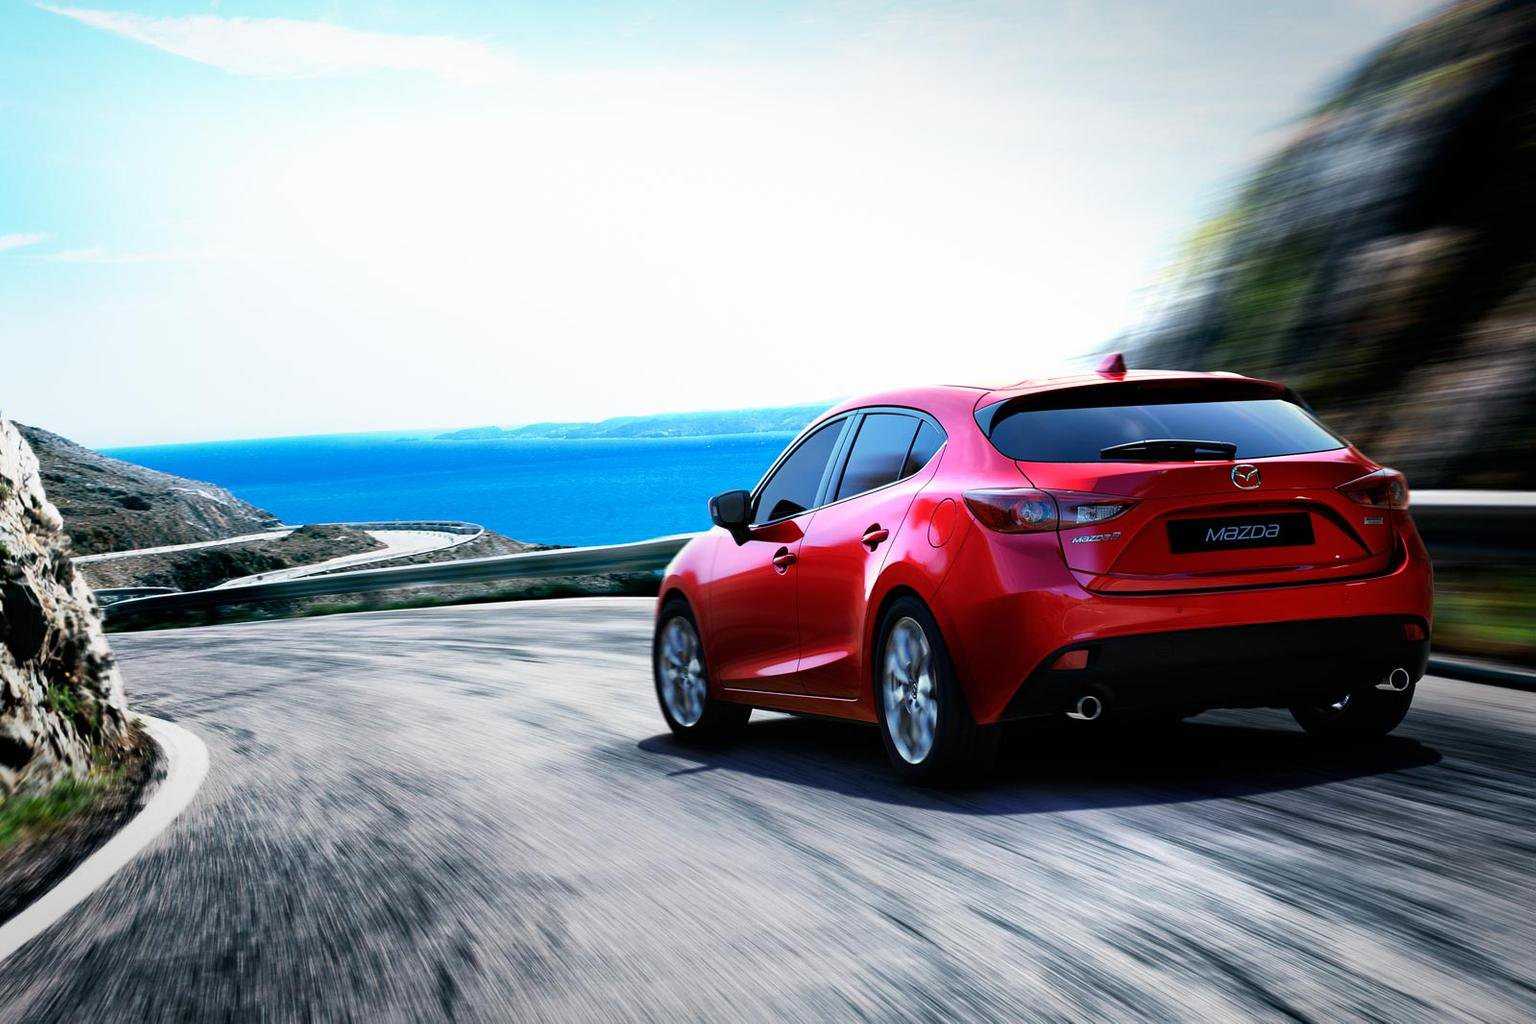 Mazda Promotion: Safe as houses: 6 ways the all-new Mazda3 protects you and your family